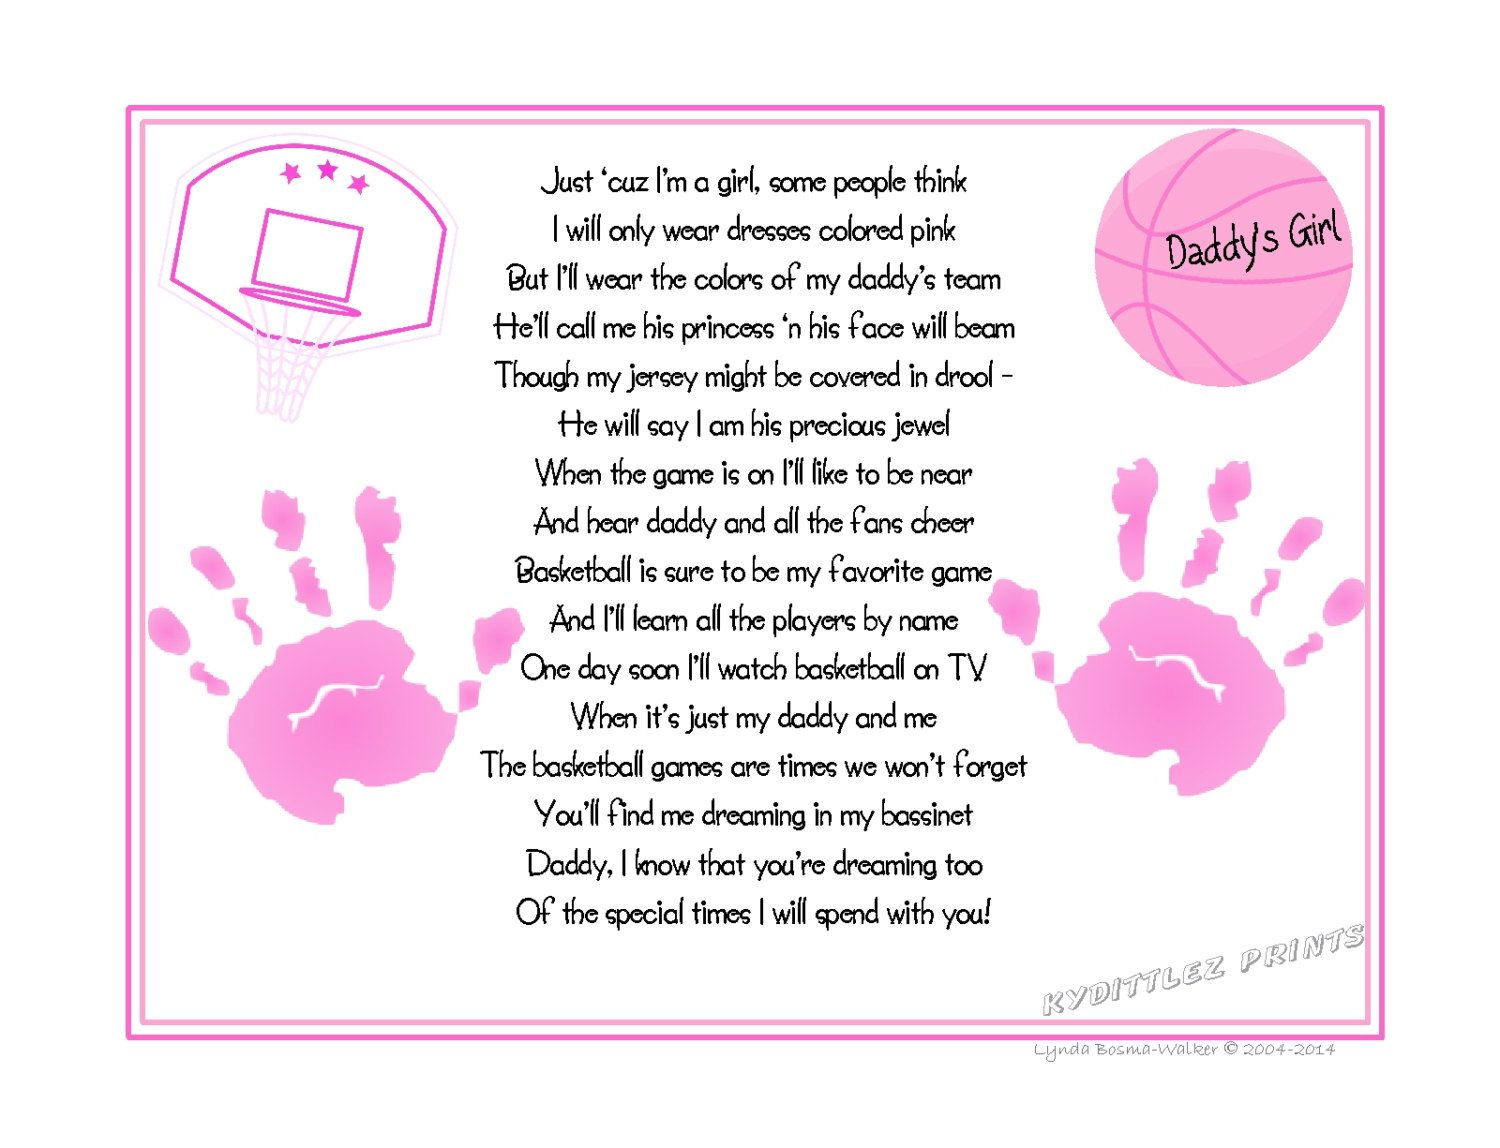 unborn baby poems for baby shower - photo #15